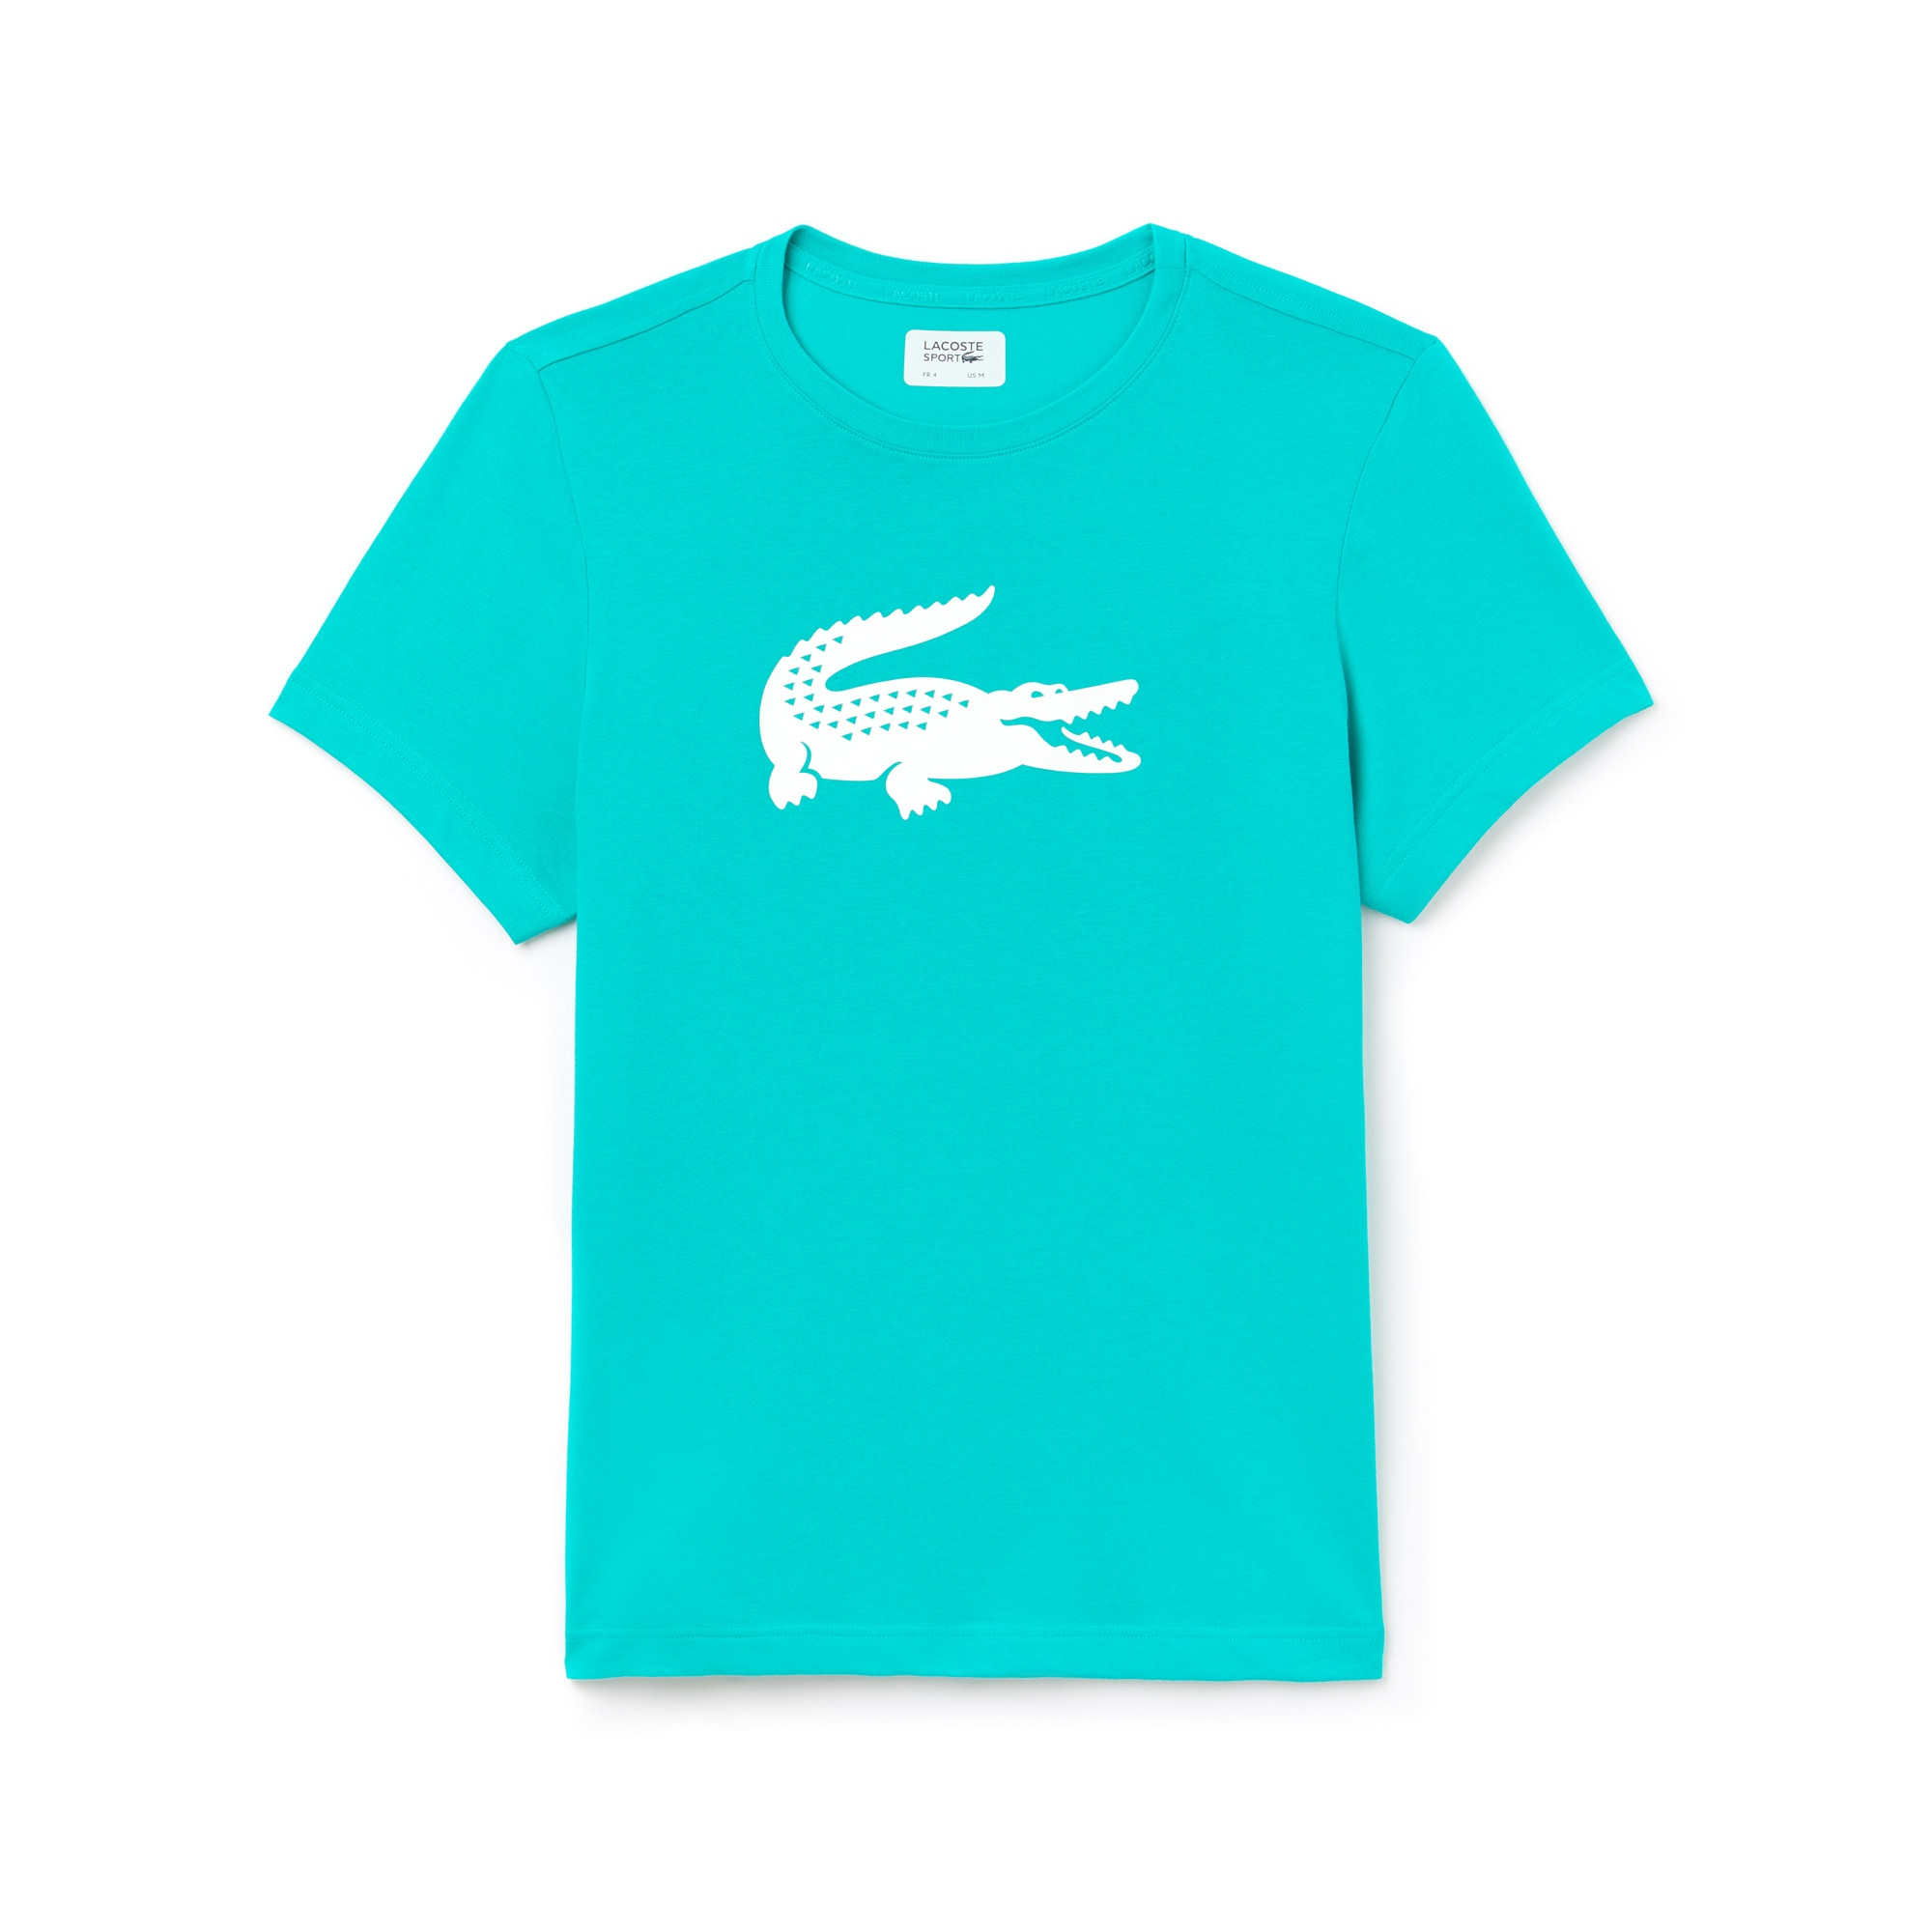 Men's Lacoste SPORT Oversized Crocodile Technical Jersey Tennis T-Shirt